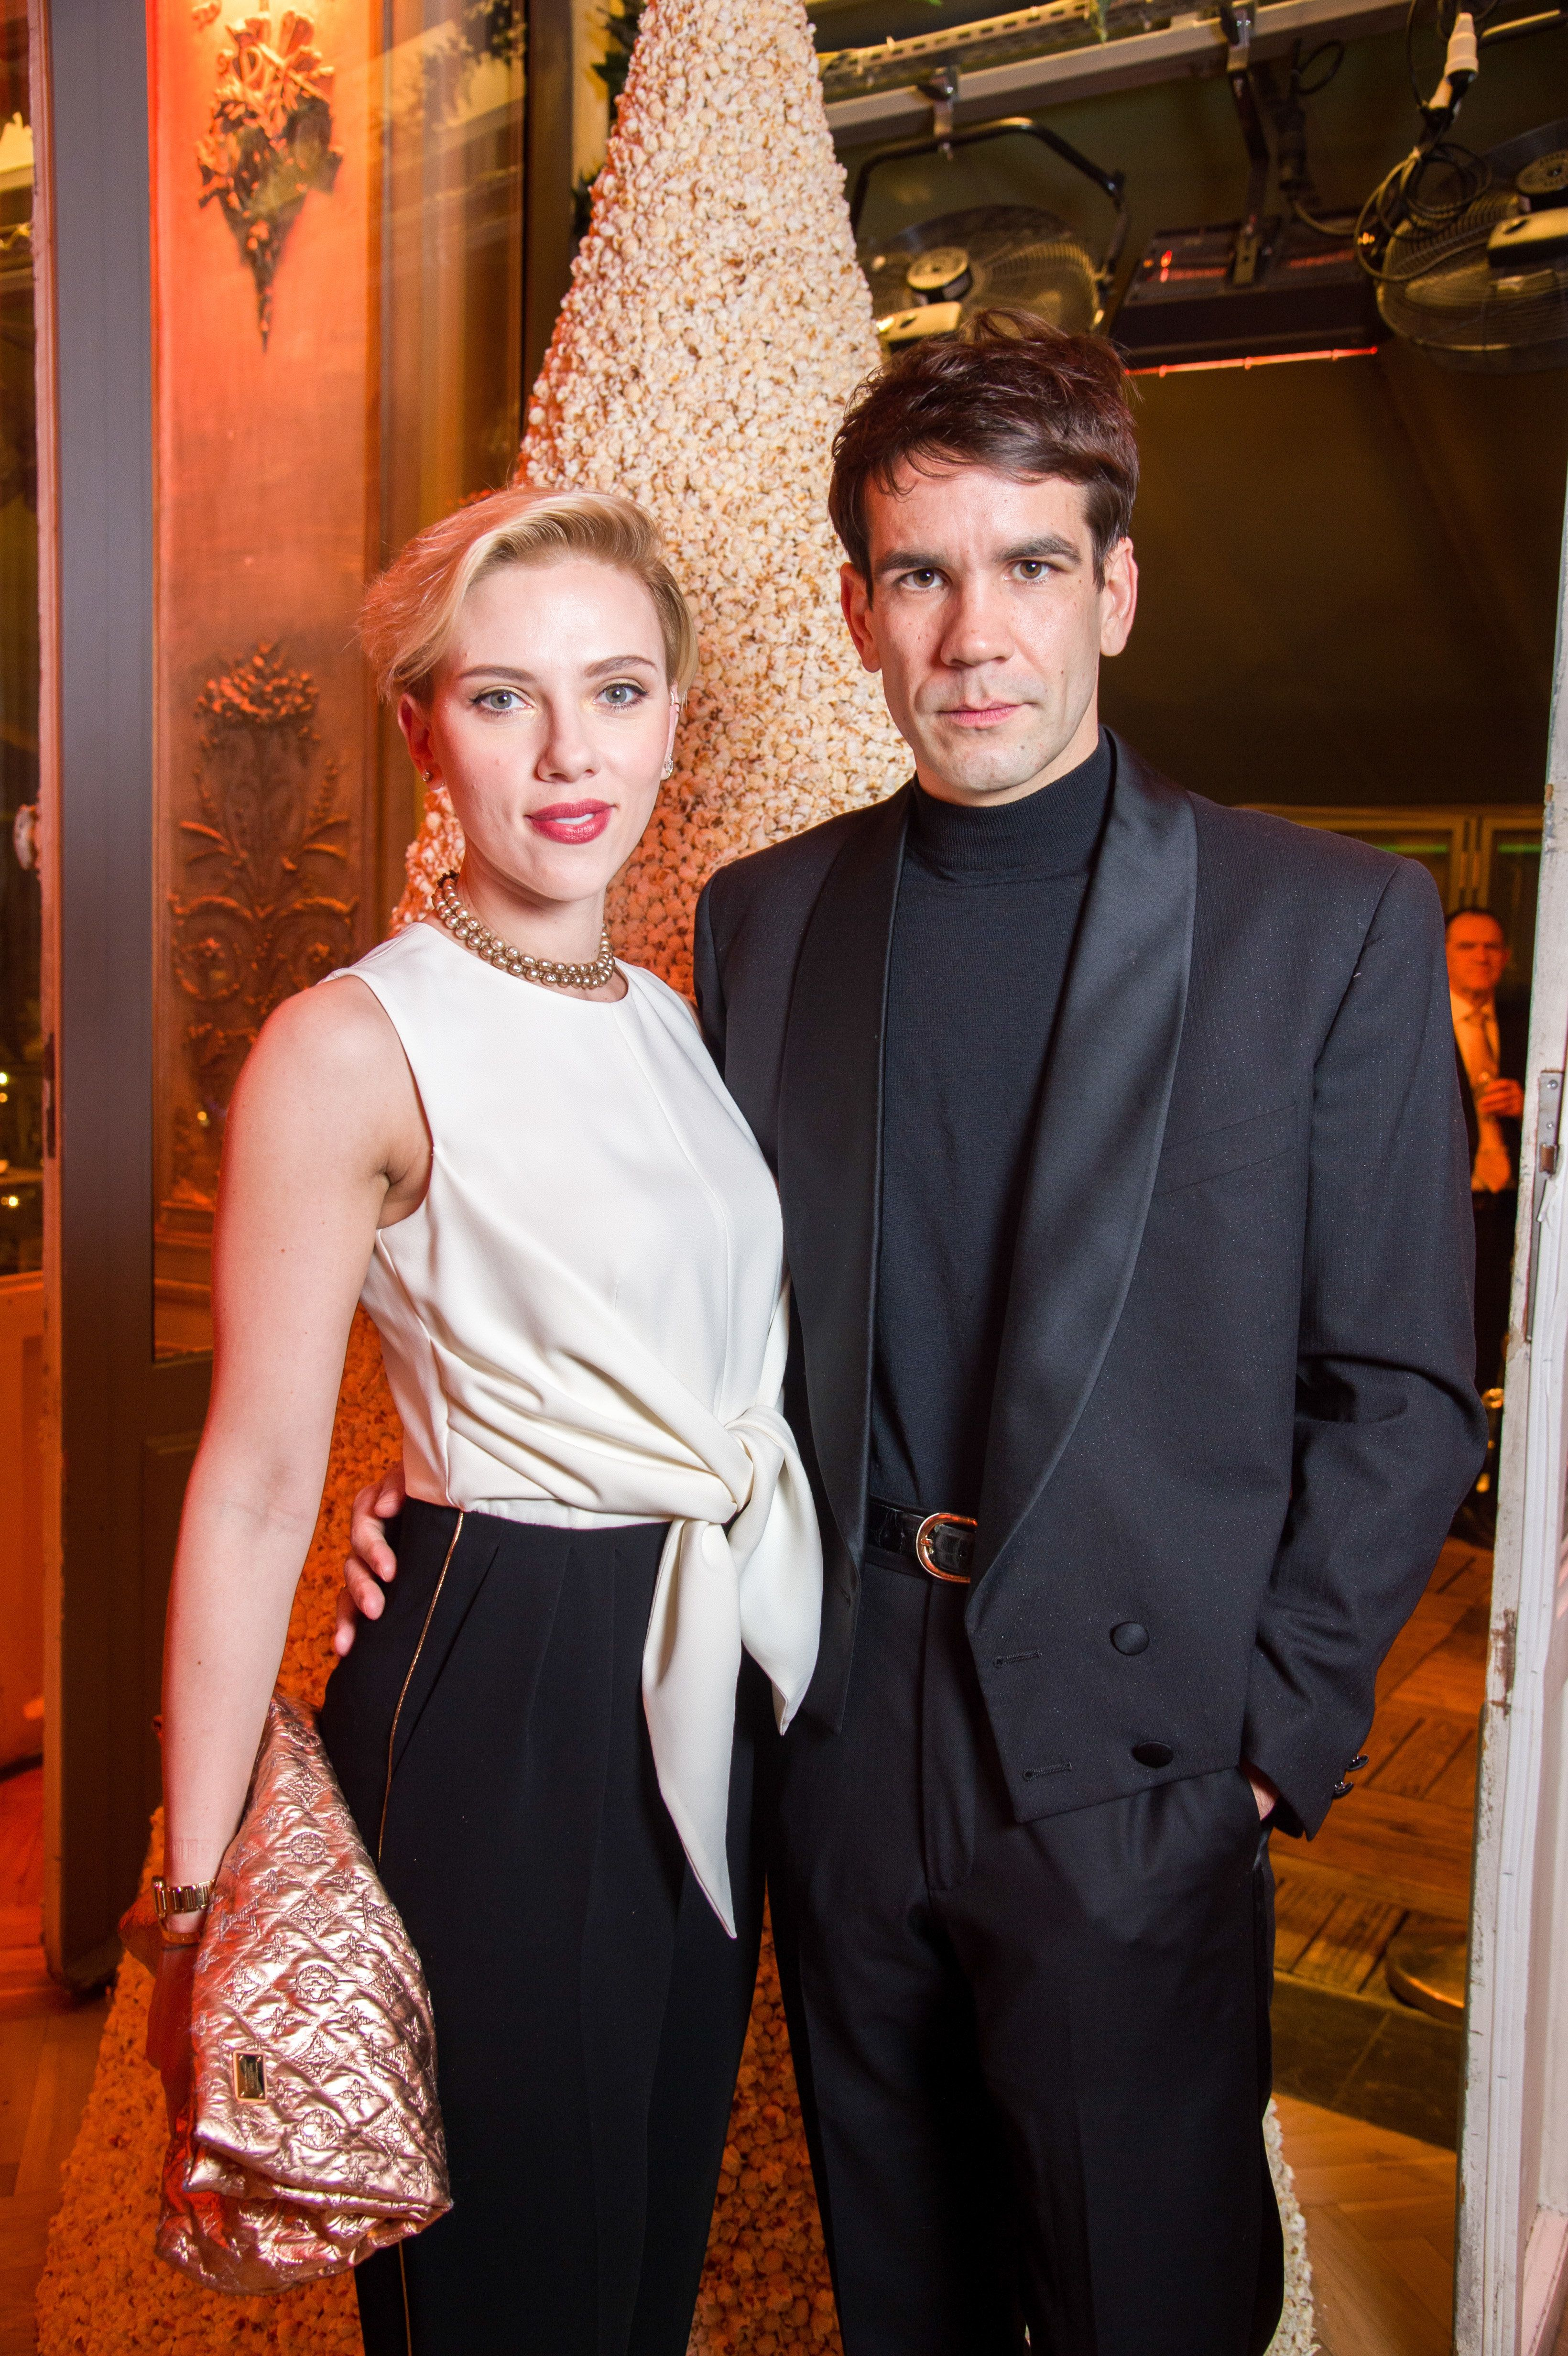 Scarlett Johansson 'Files For Divorce' From Husband Of Two Years